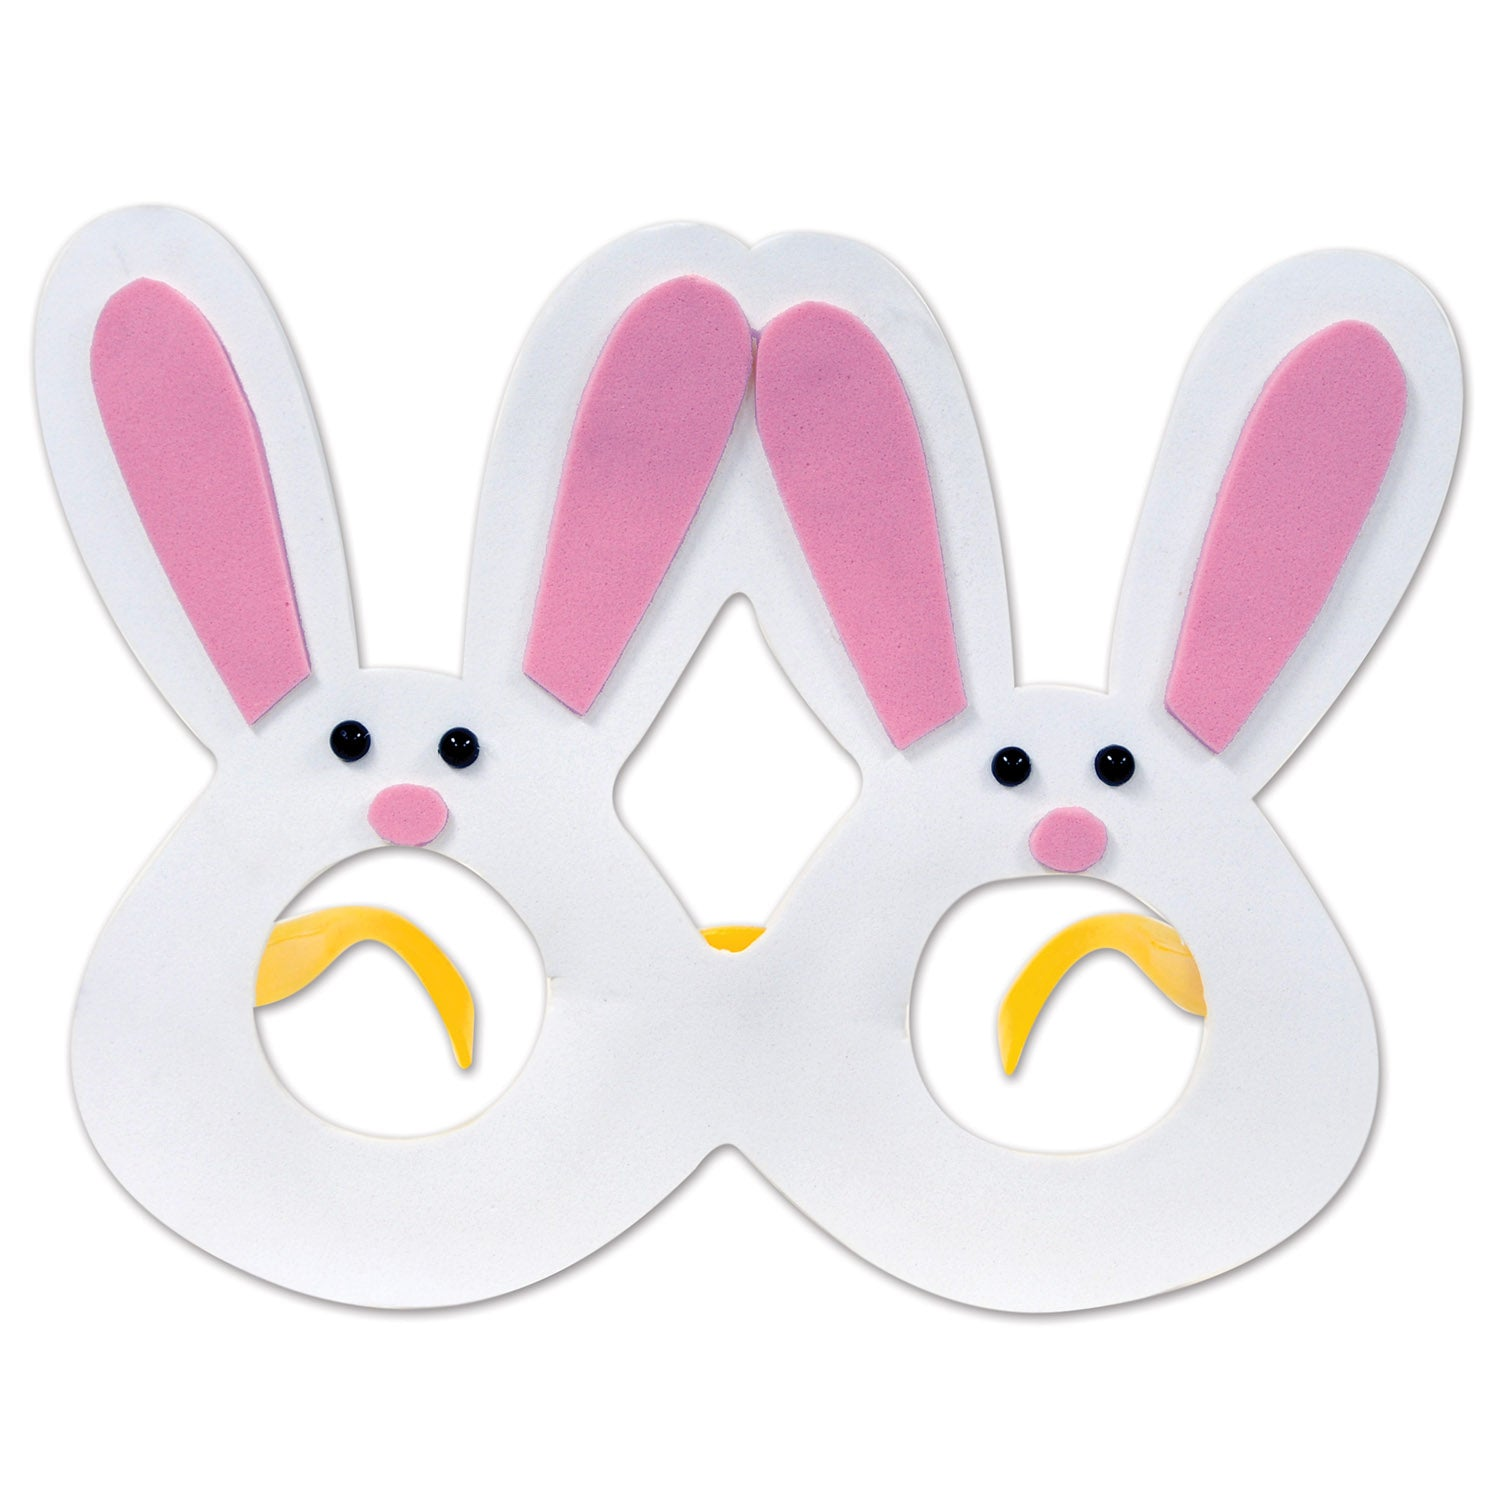 Bunny Glasses by Beistle - Easter Theme Decorations